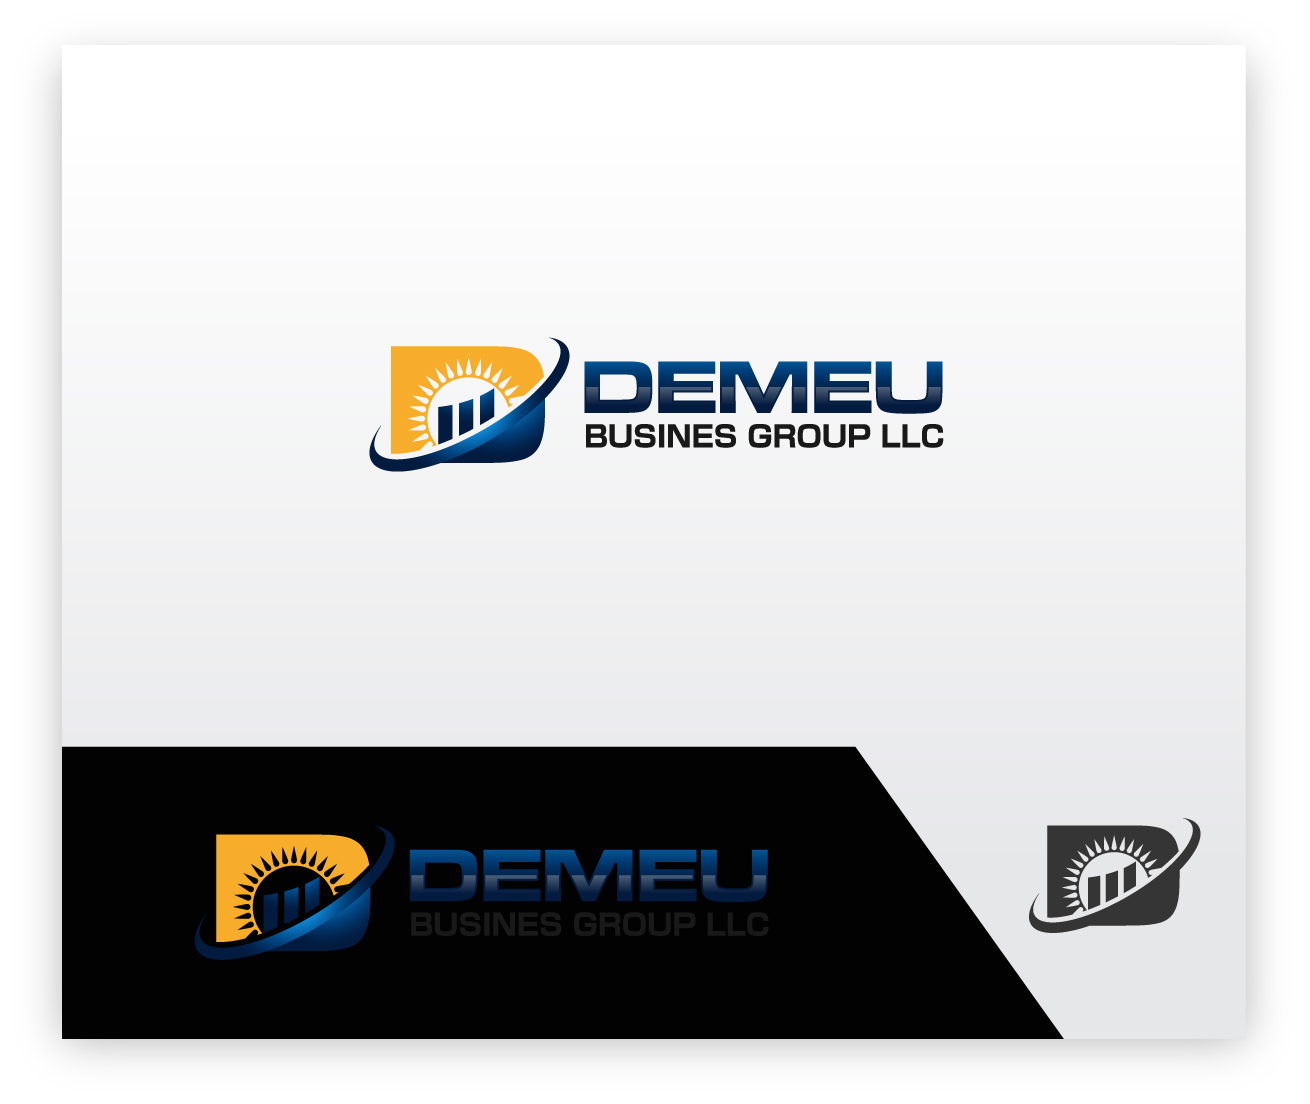 Logo Design by zoiDesign - Entry No. 116 in the Logo Design Contest Captivating Logo Design for DEMEU Business Group.